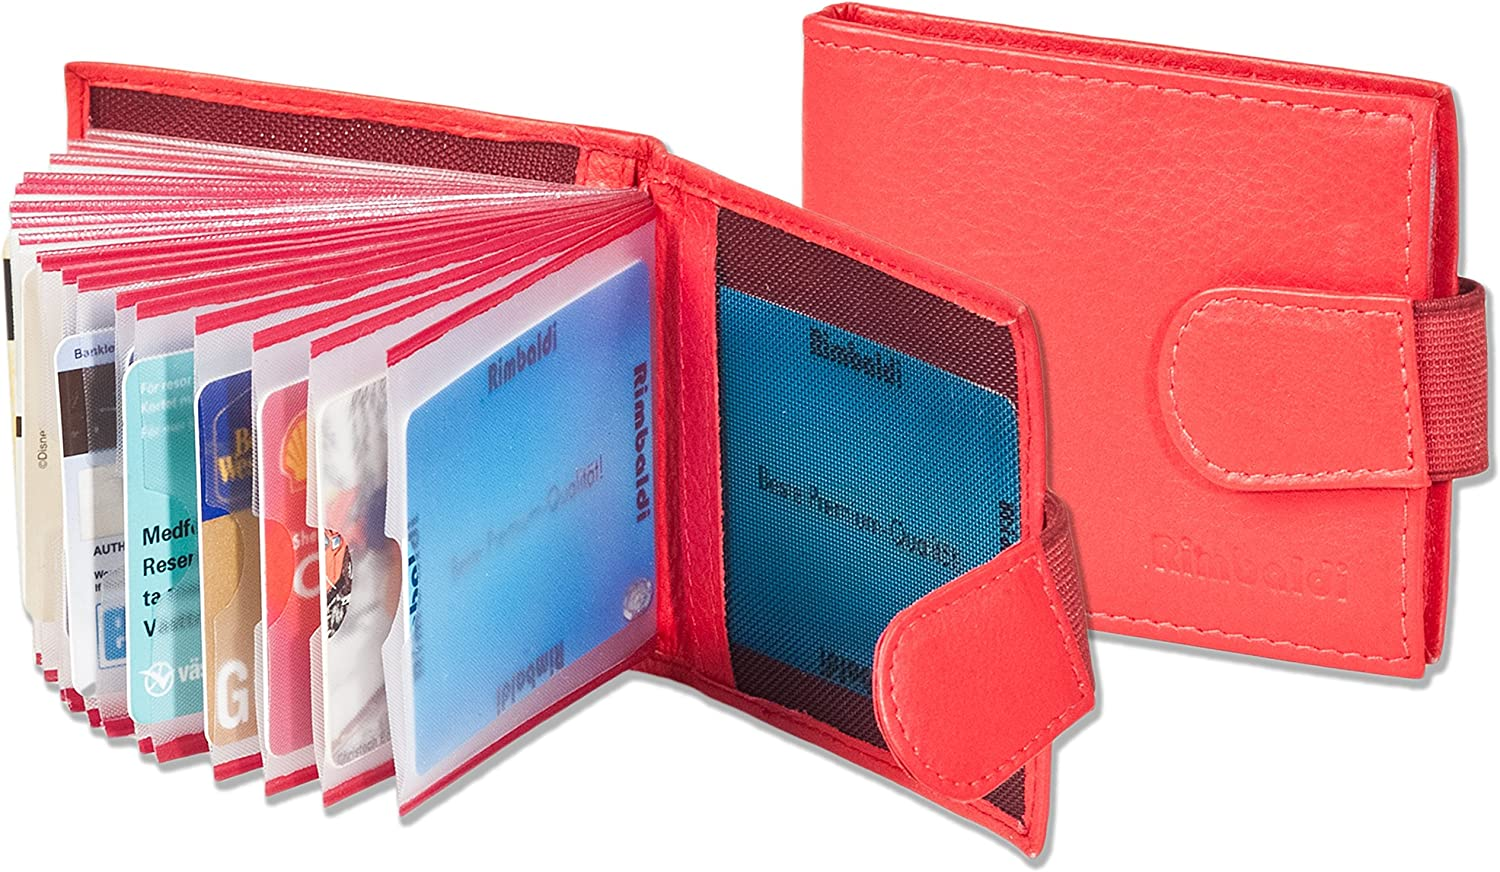 made from soft Rimbaldi untreated calf leather in Rot Credit card holder for 28 cards or 36 business cards